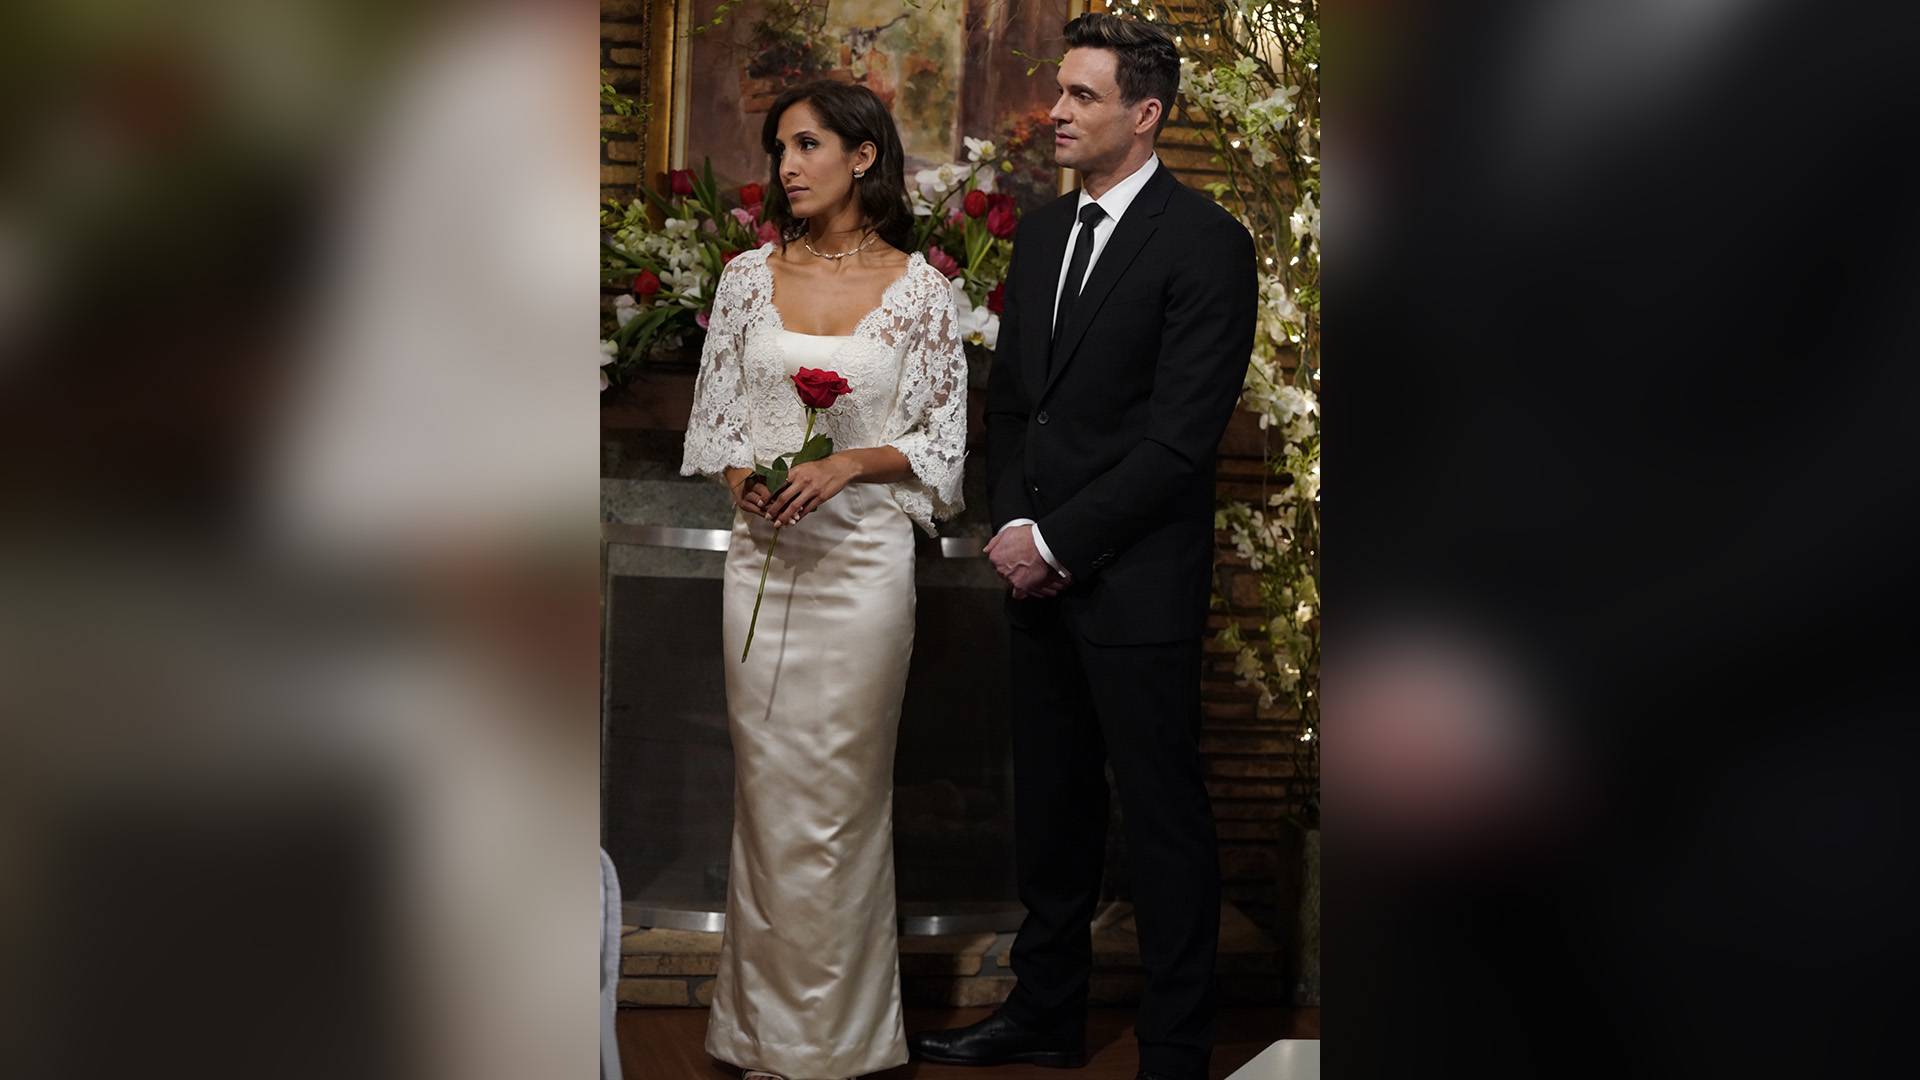 Cane and Lily renew their wedding vows.